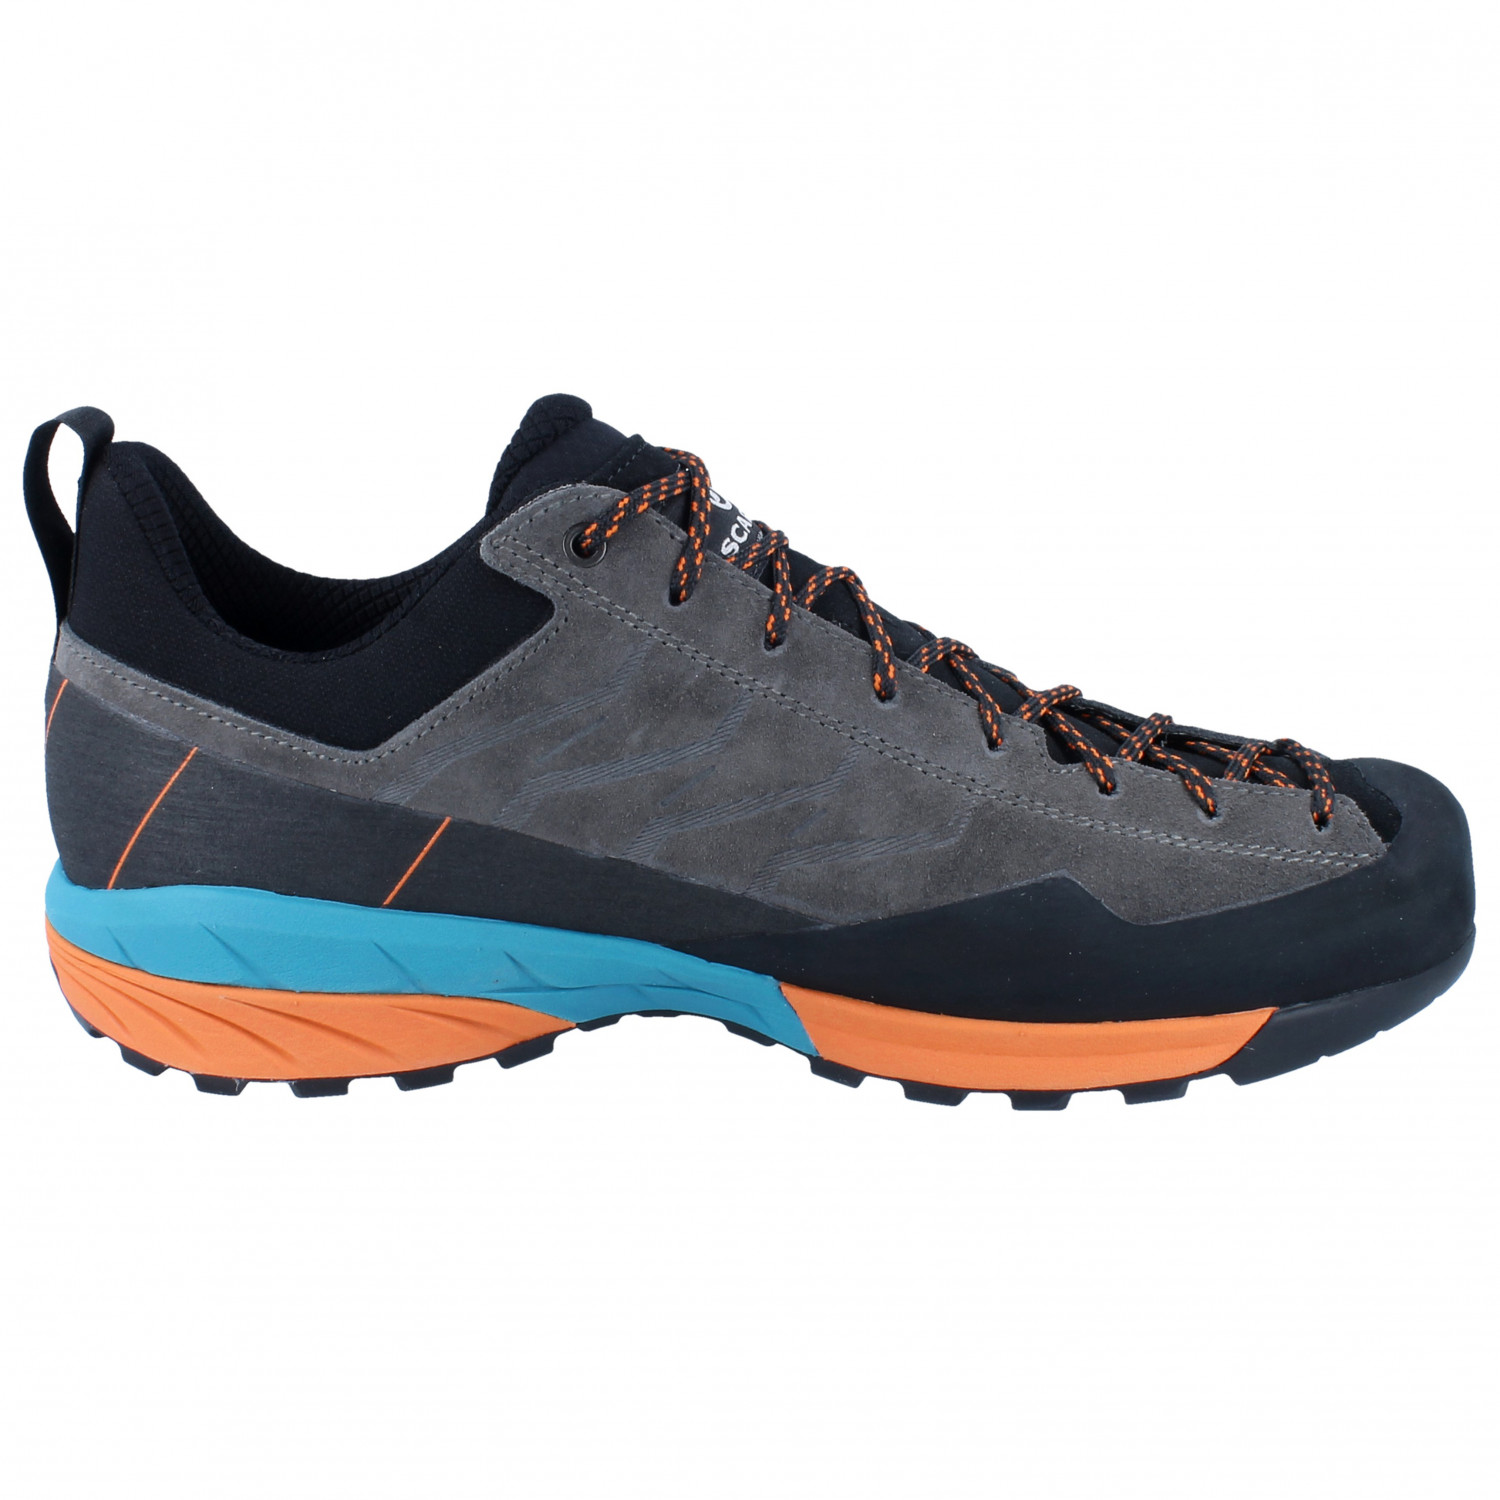 Scarpa Mescalito - Approach Shoes Men's | Free UK Delivery ...